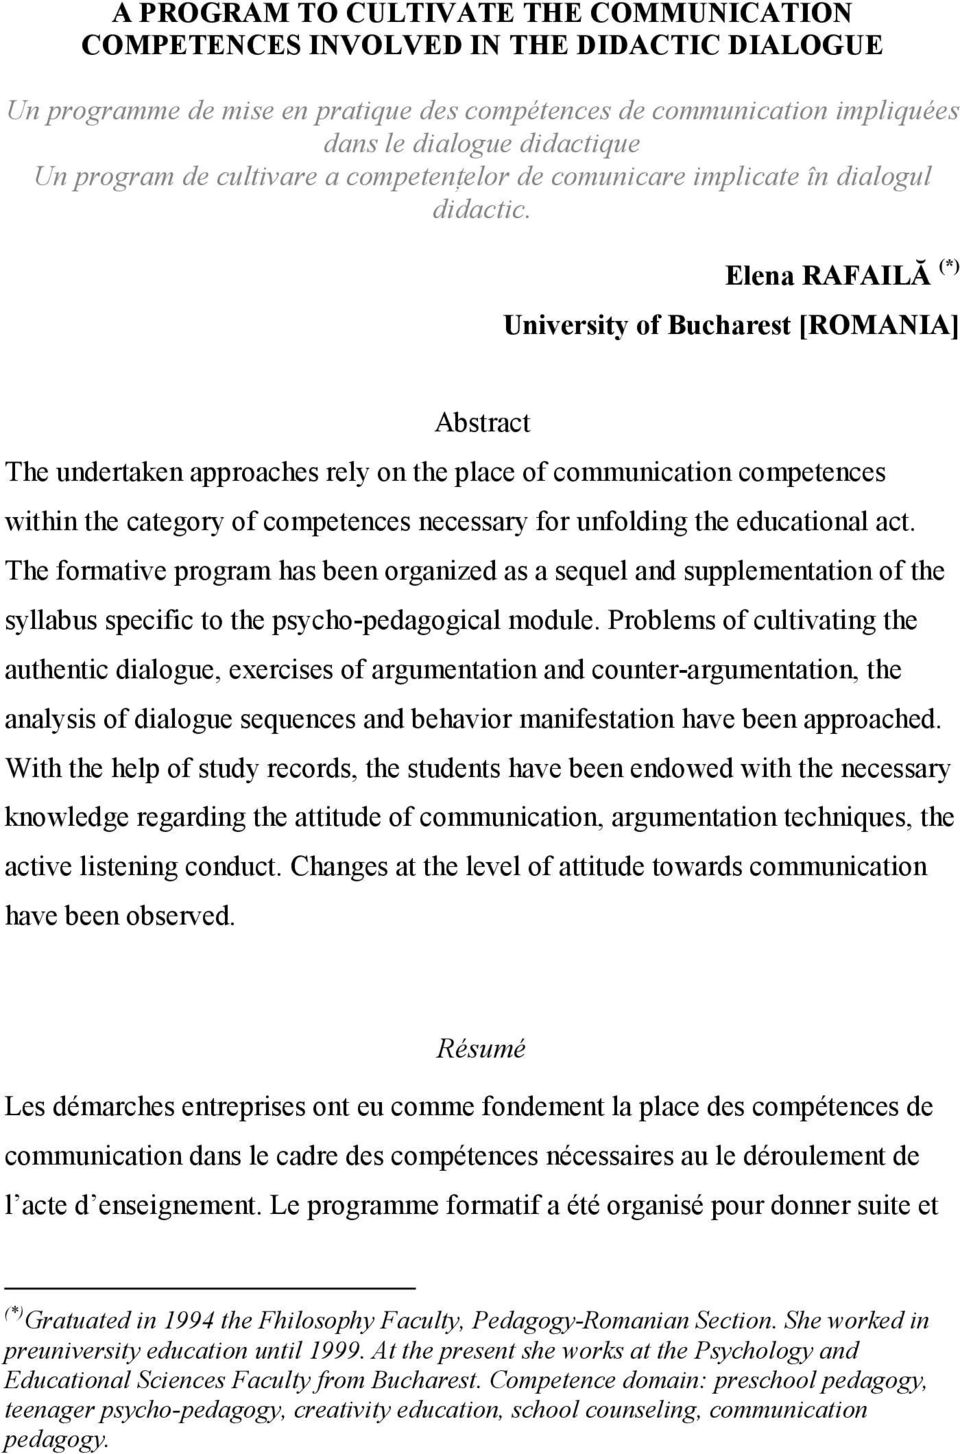 Elena RAFAILĂ (*) University of Bucharest [ROMANIA] Abstract The undertaken approaches rely on the place of communication competences within the category of competences necessary for unfolding the